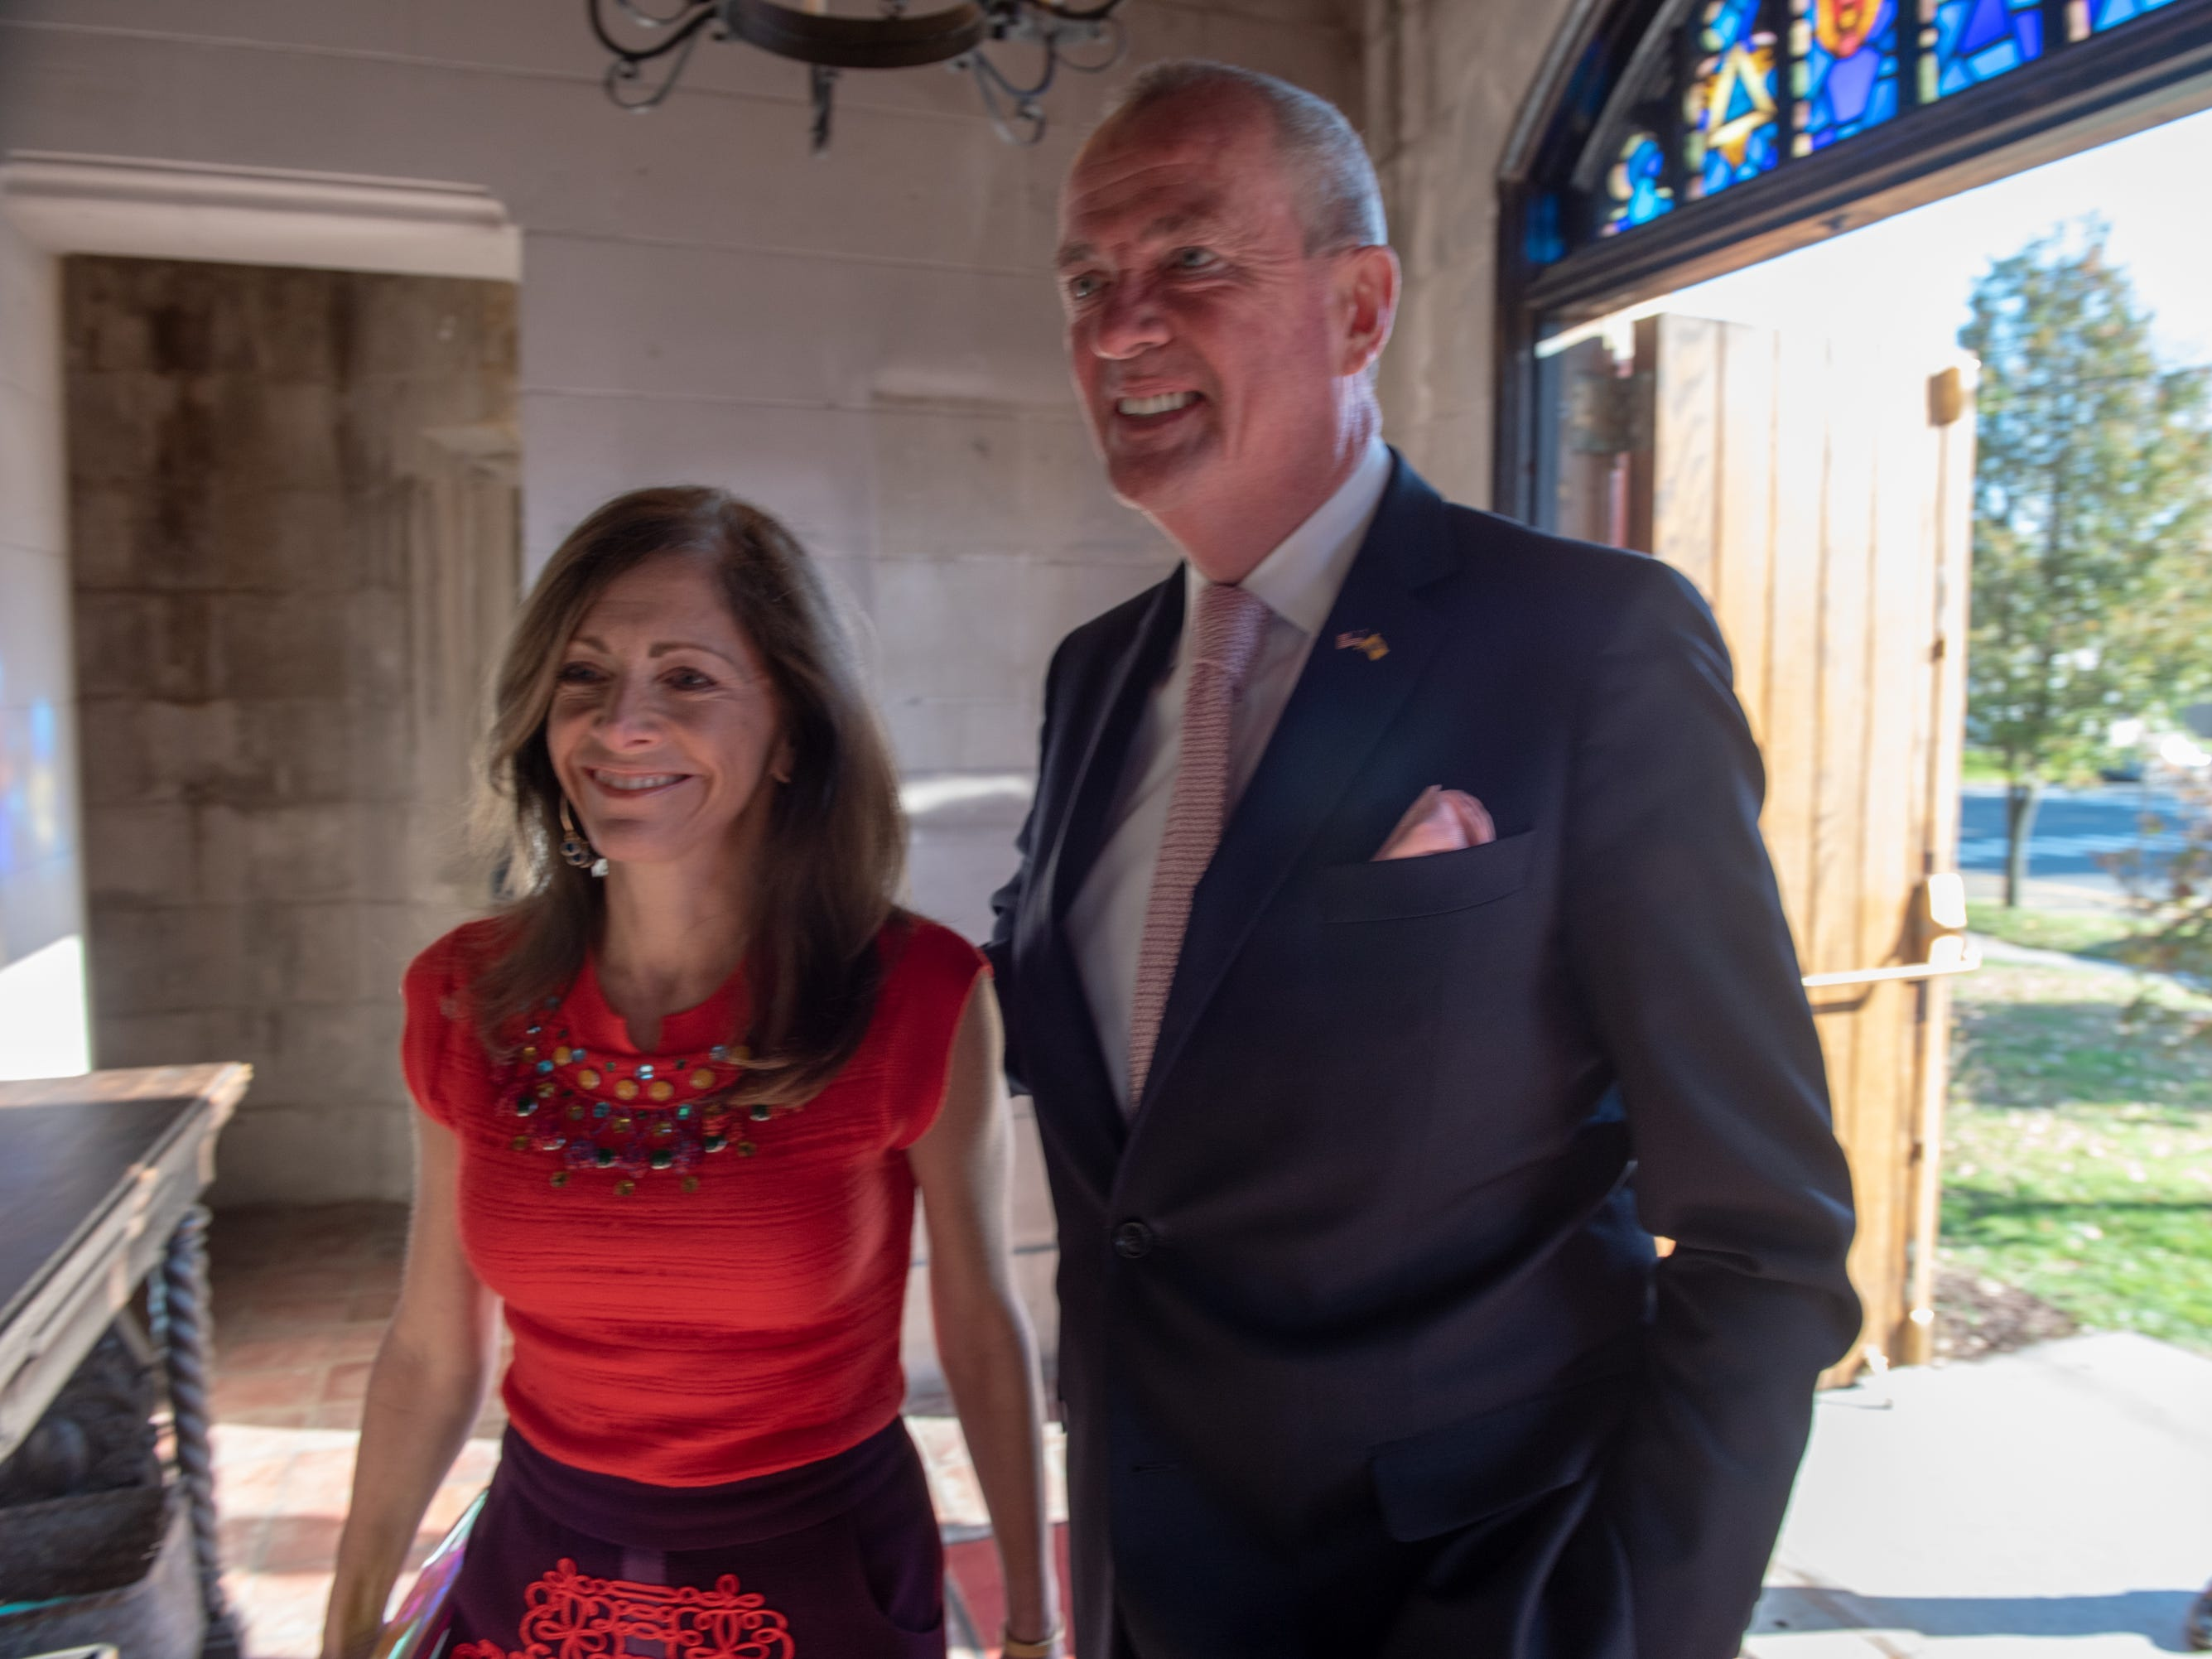 Gov. Phil Murphy and wife Tammy Snyder Murphy enter Trinity Church in Asbury Park.